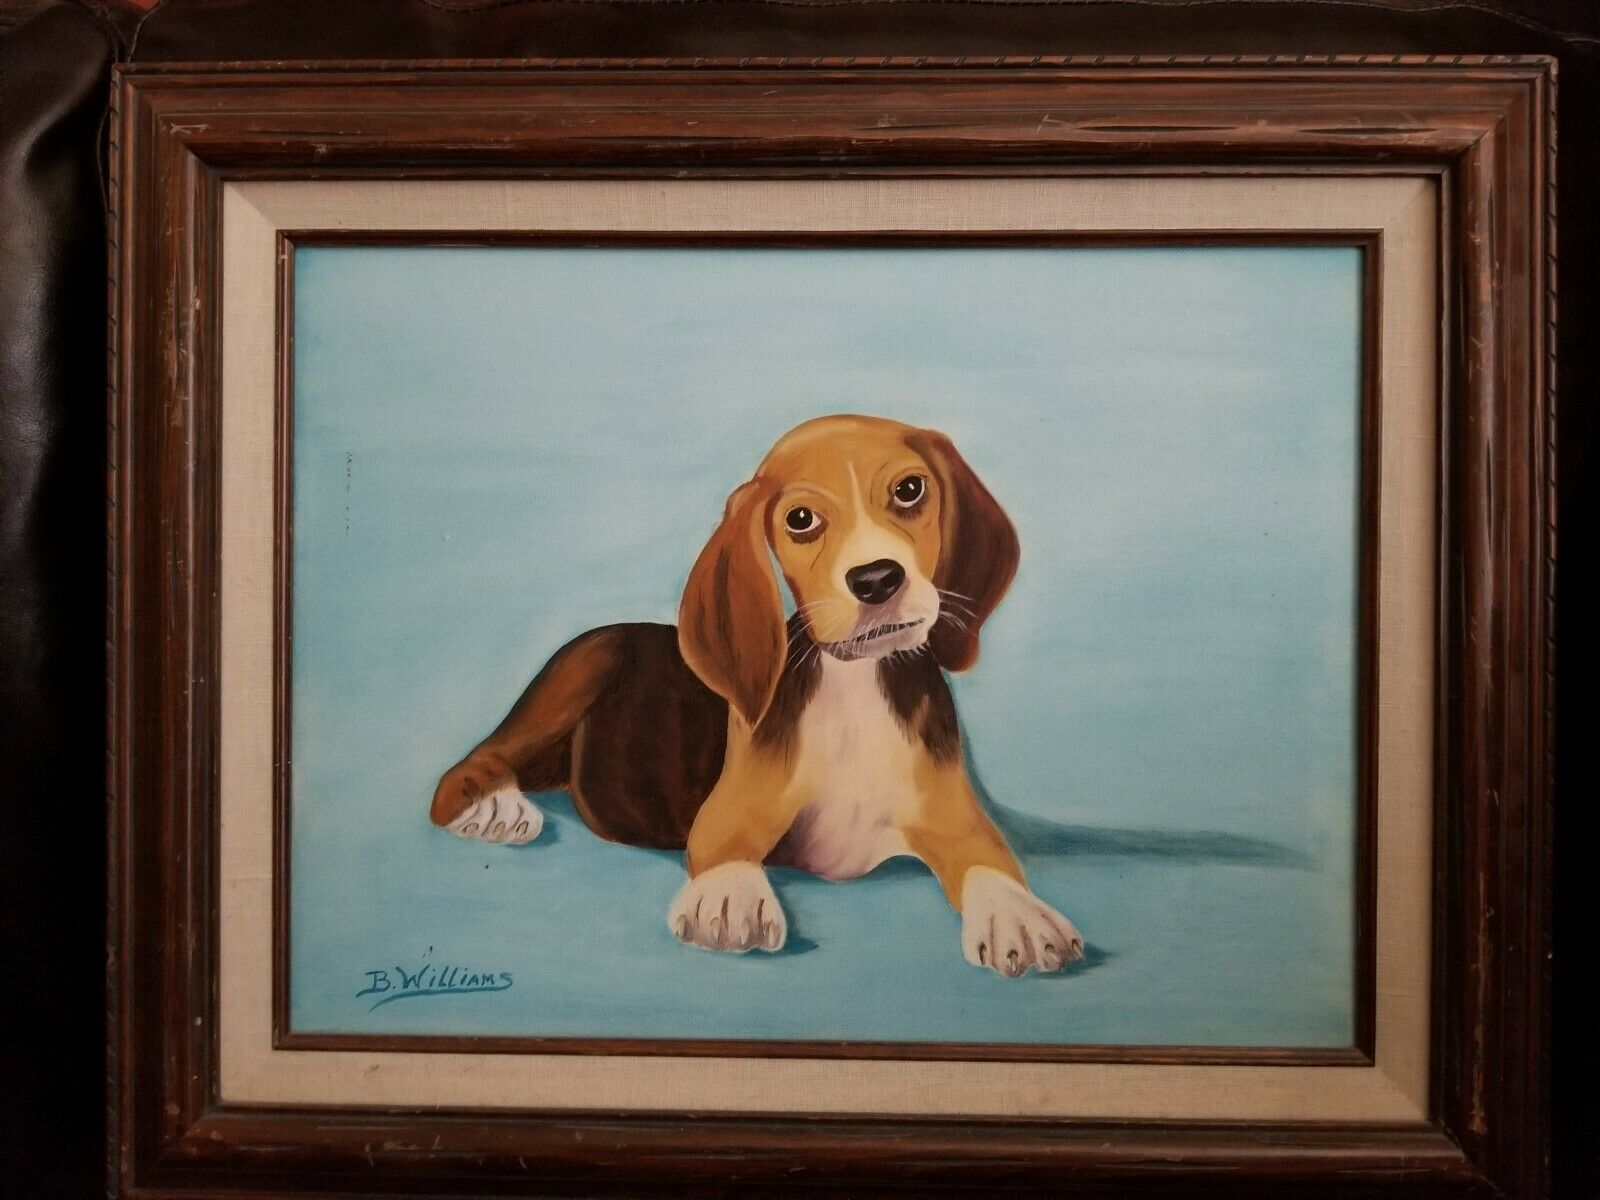 Beagle Puppy Dog Painting Portrait Framed Original Art Signed B Williams Ebay